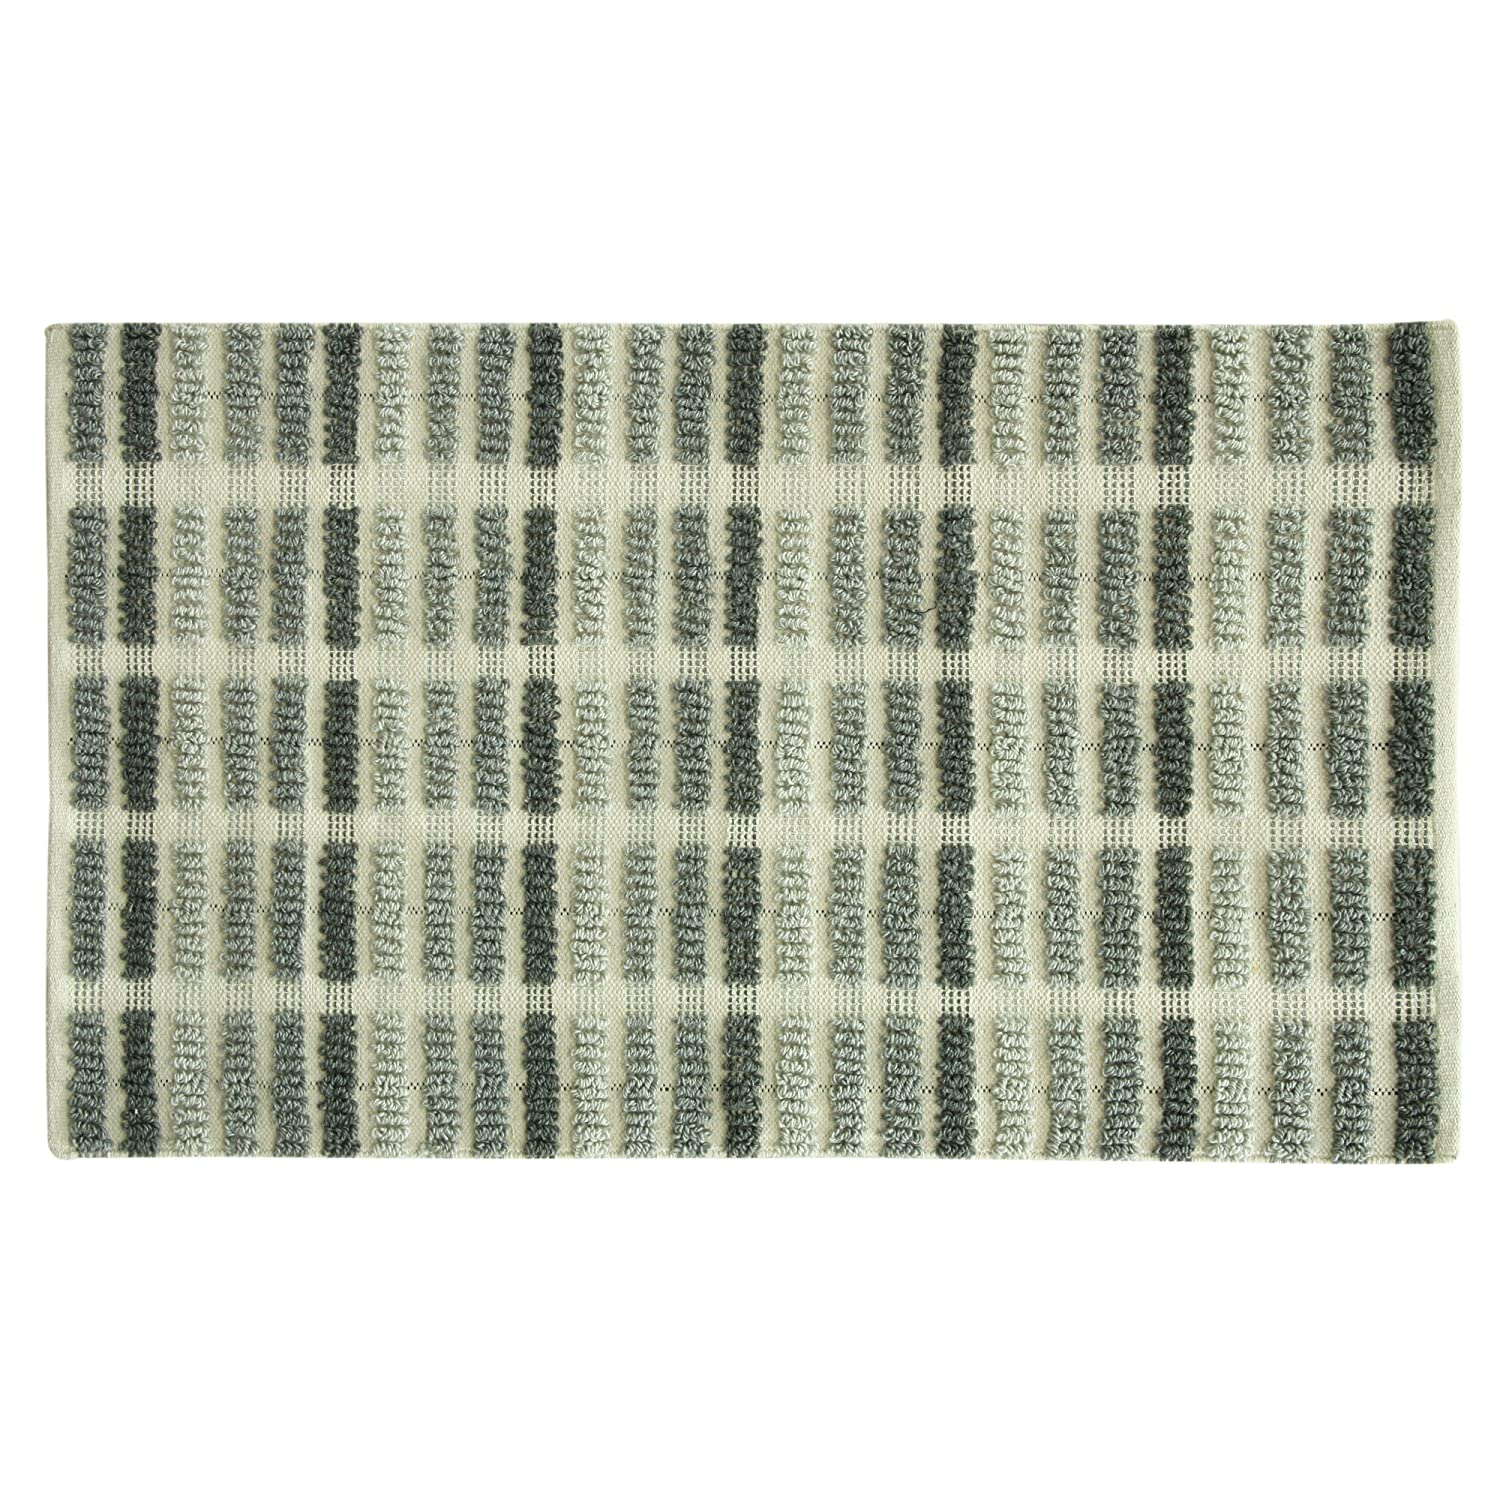 Bacova Guild Jessica Simpson Wynne Accent Rug, Bath Rug, 45'x27', Gray